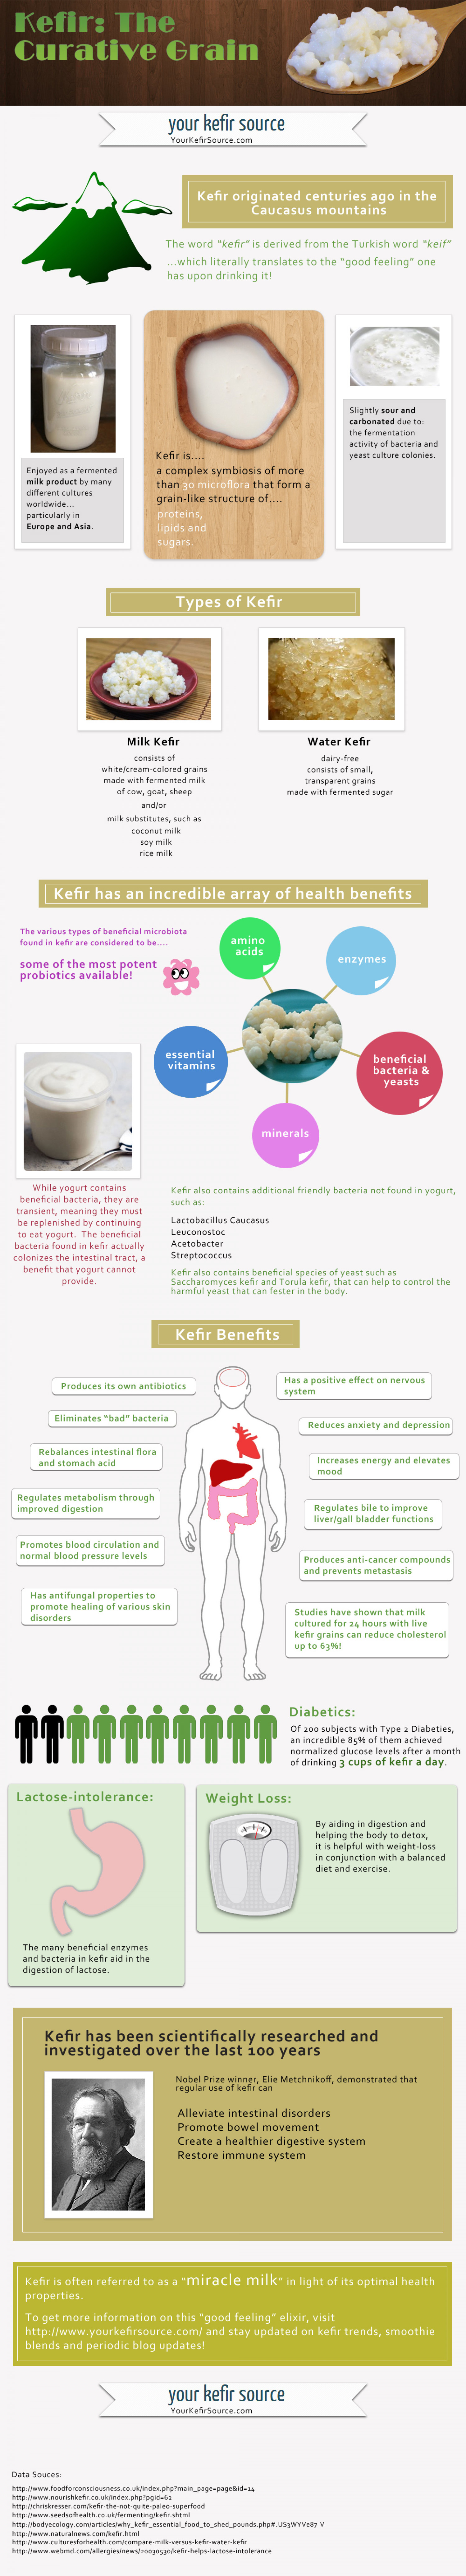 Kefir: The Curative Grain Infographic